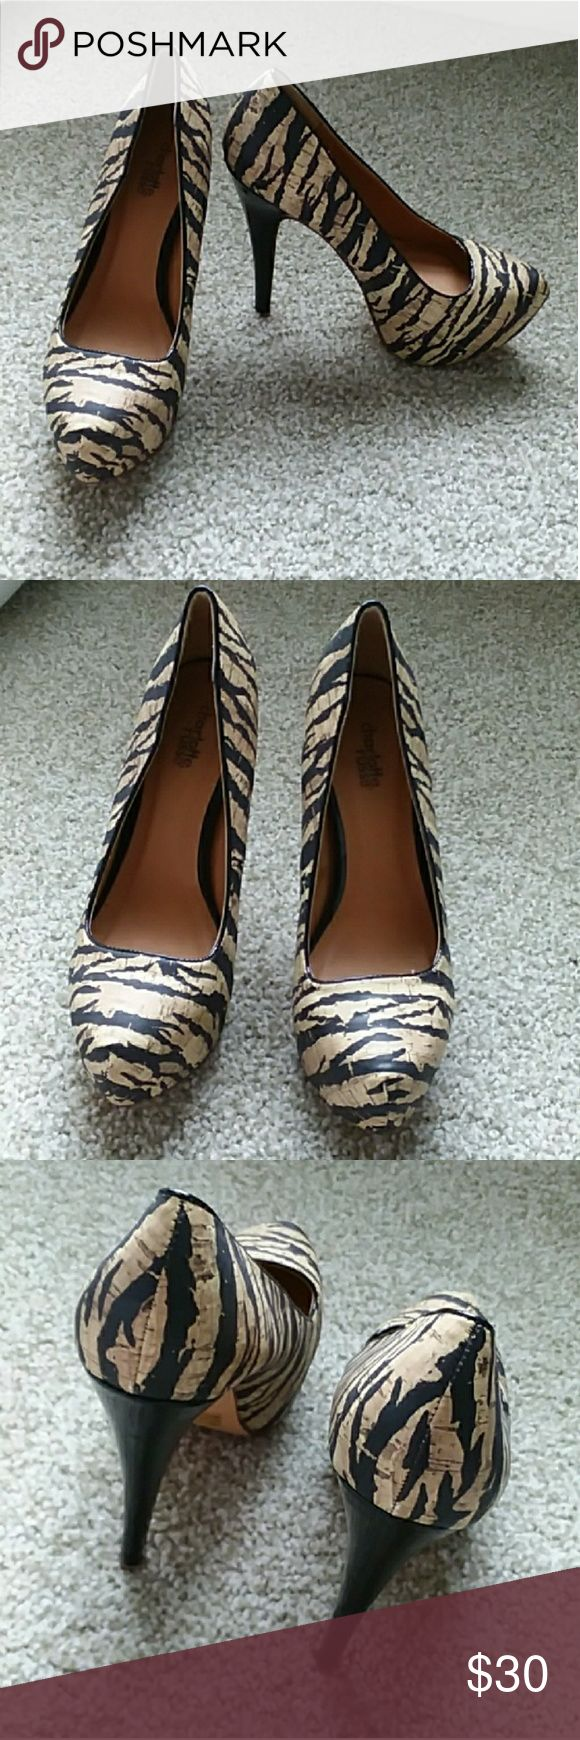 "Charlotte Russe Zebra Heels Adorable Charlotte Russe Zebra Print Heels that go with so much!  - There is a little damage to the heels but not noticeable at all when wearing! ( Shown in pic #4) Other than that they are in great Condition!  - Heel is about 5.5""  Please feel free to make a reasonable offer! Charlotte Russe Shoes Heels"